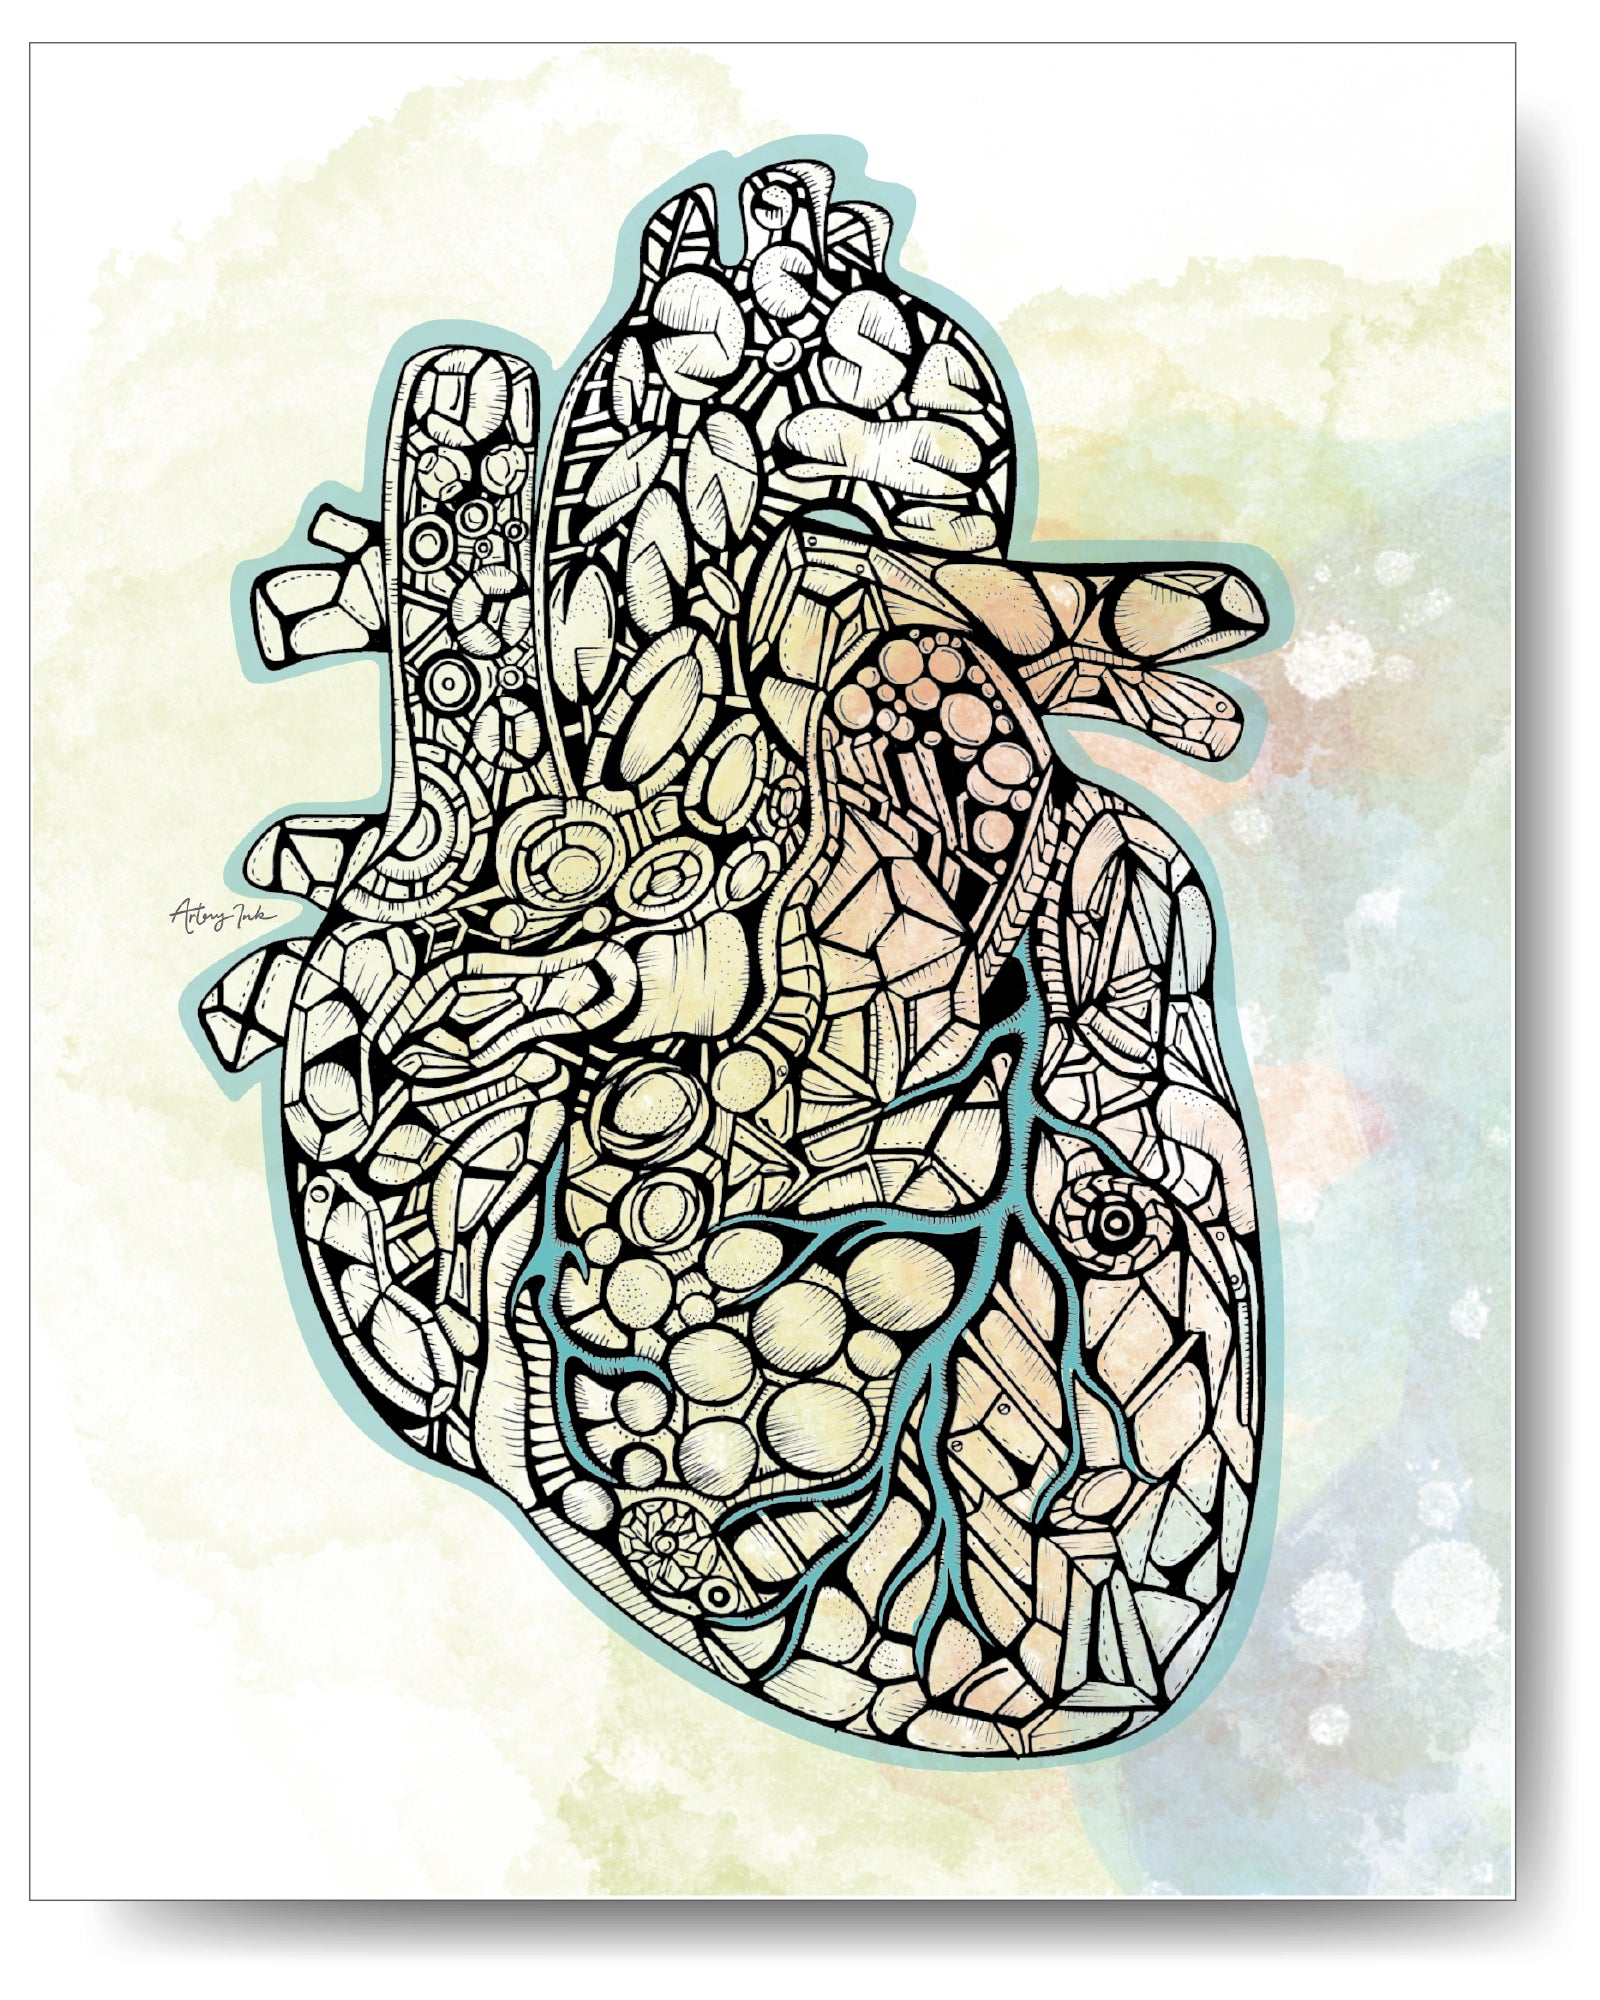 Diamond Series - Heart - 8x10 or 11x14